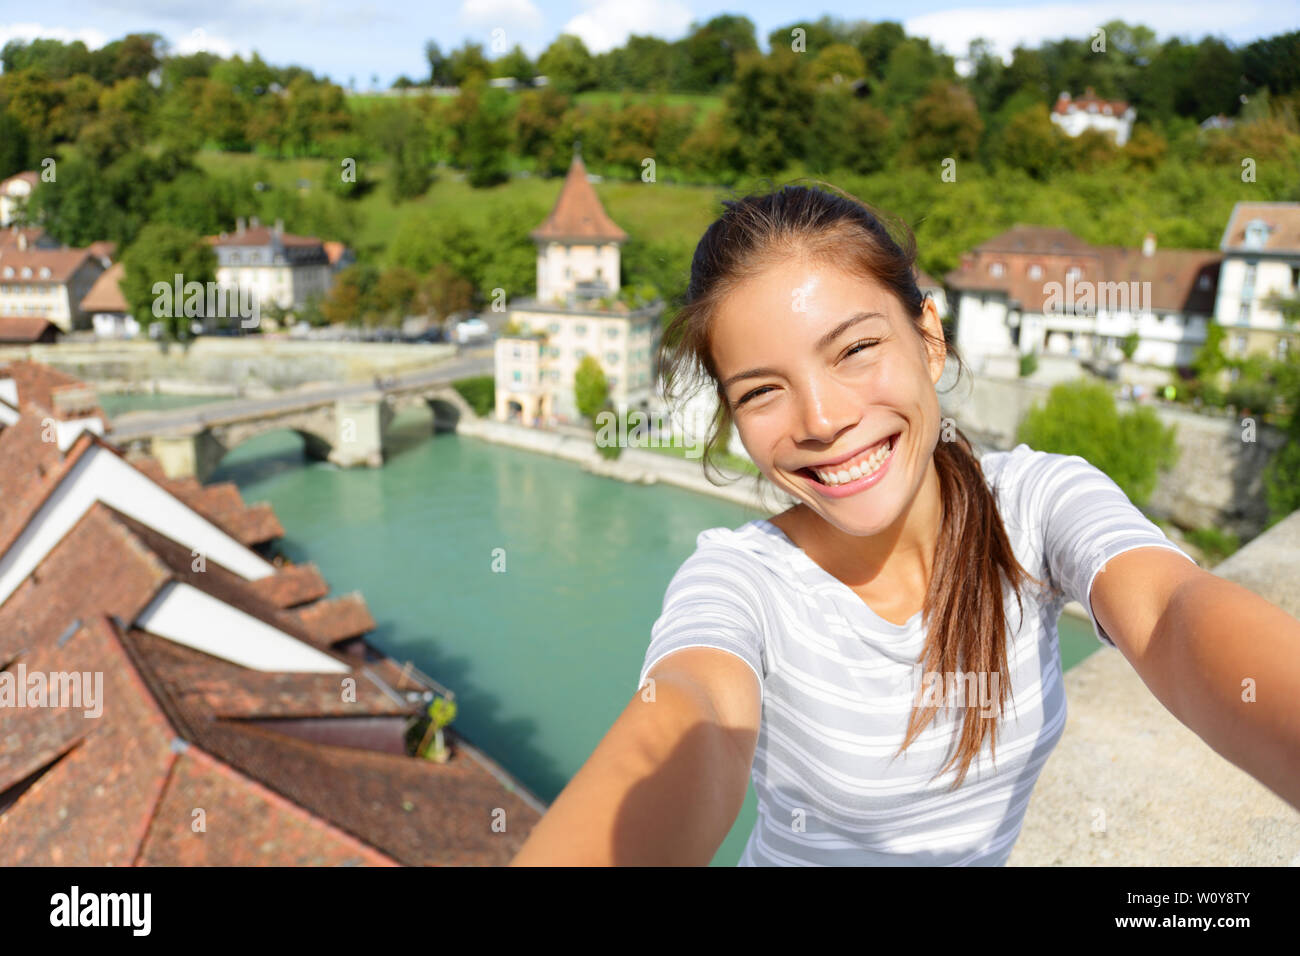 Travel selfie by woman in Bern Switzerland. Happy smiling multiracial Asian Caucasian girl taking self portrait photograph sitting on Nydeggbrucke by Aare river in the Swiss city of Bern. - Stock Image